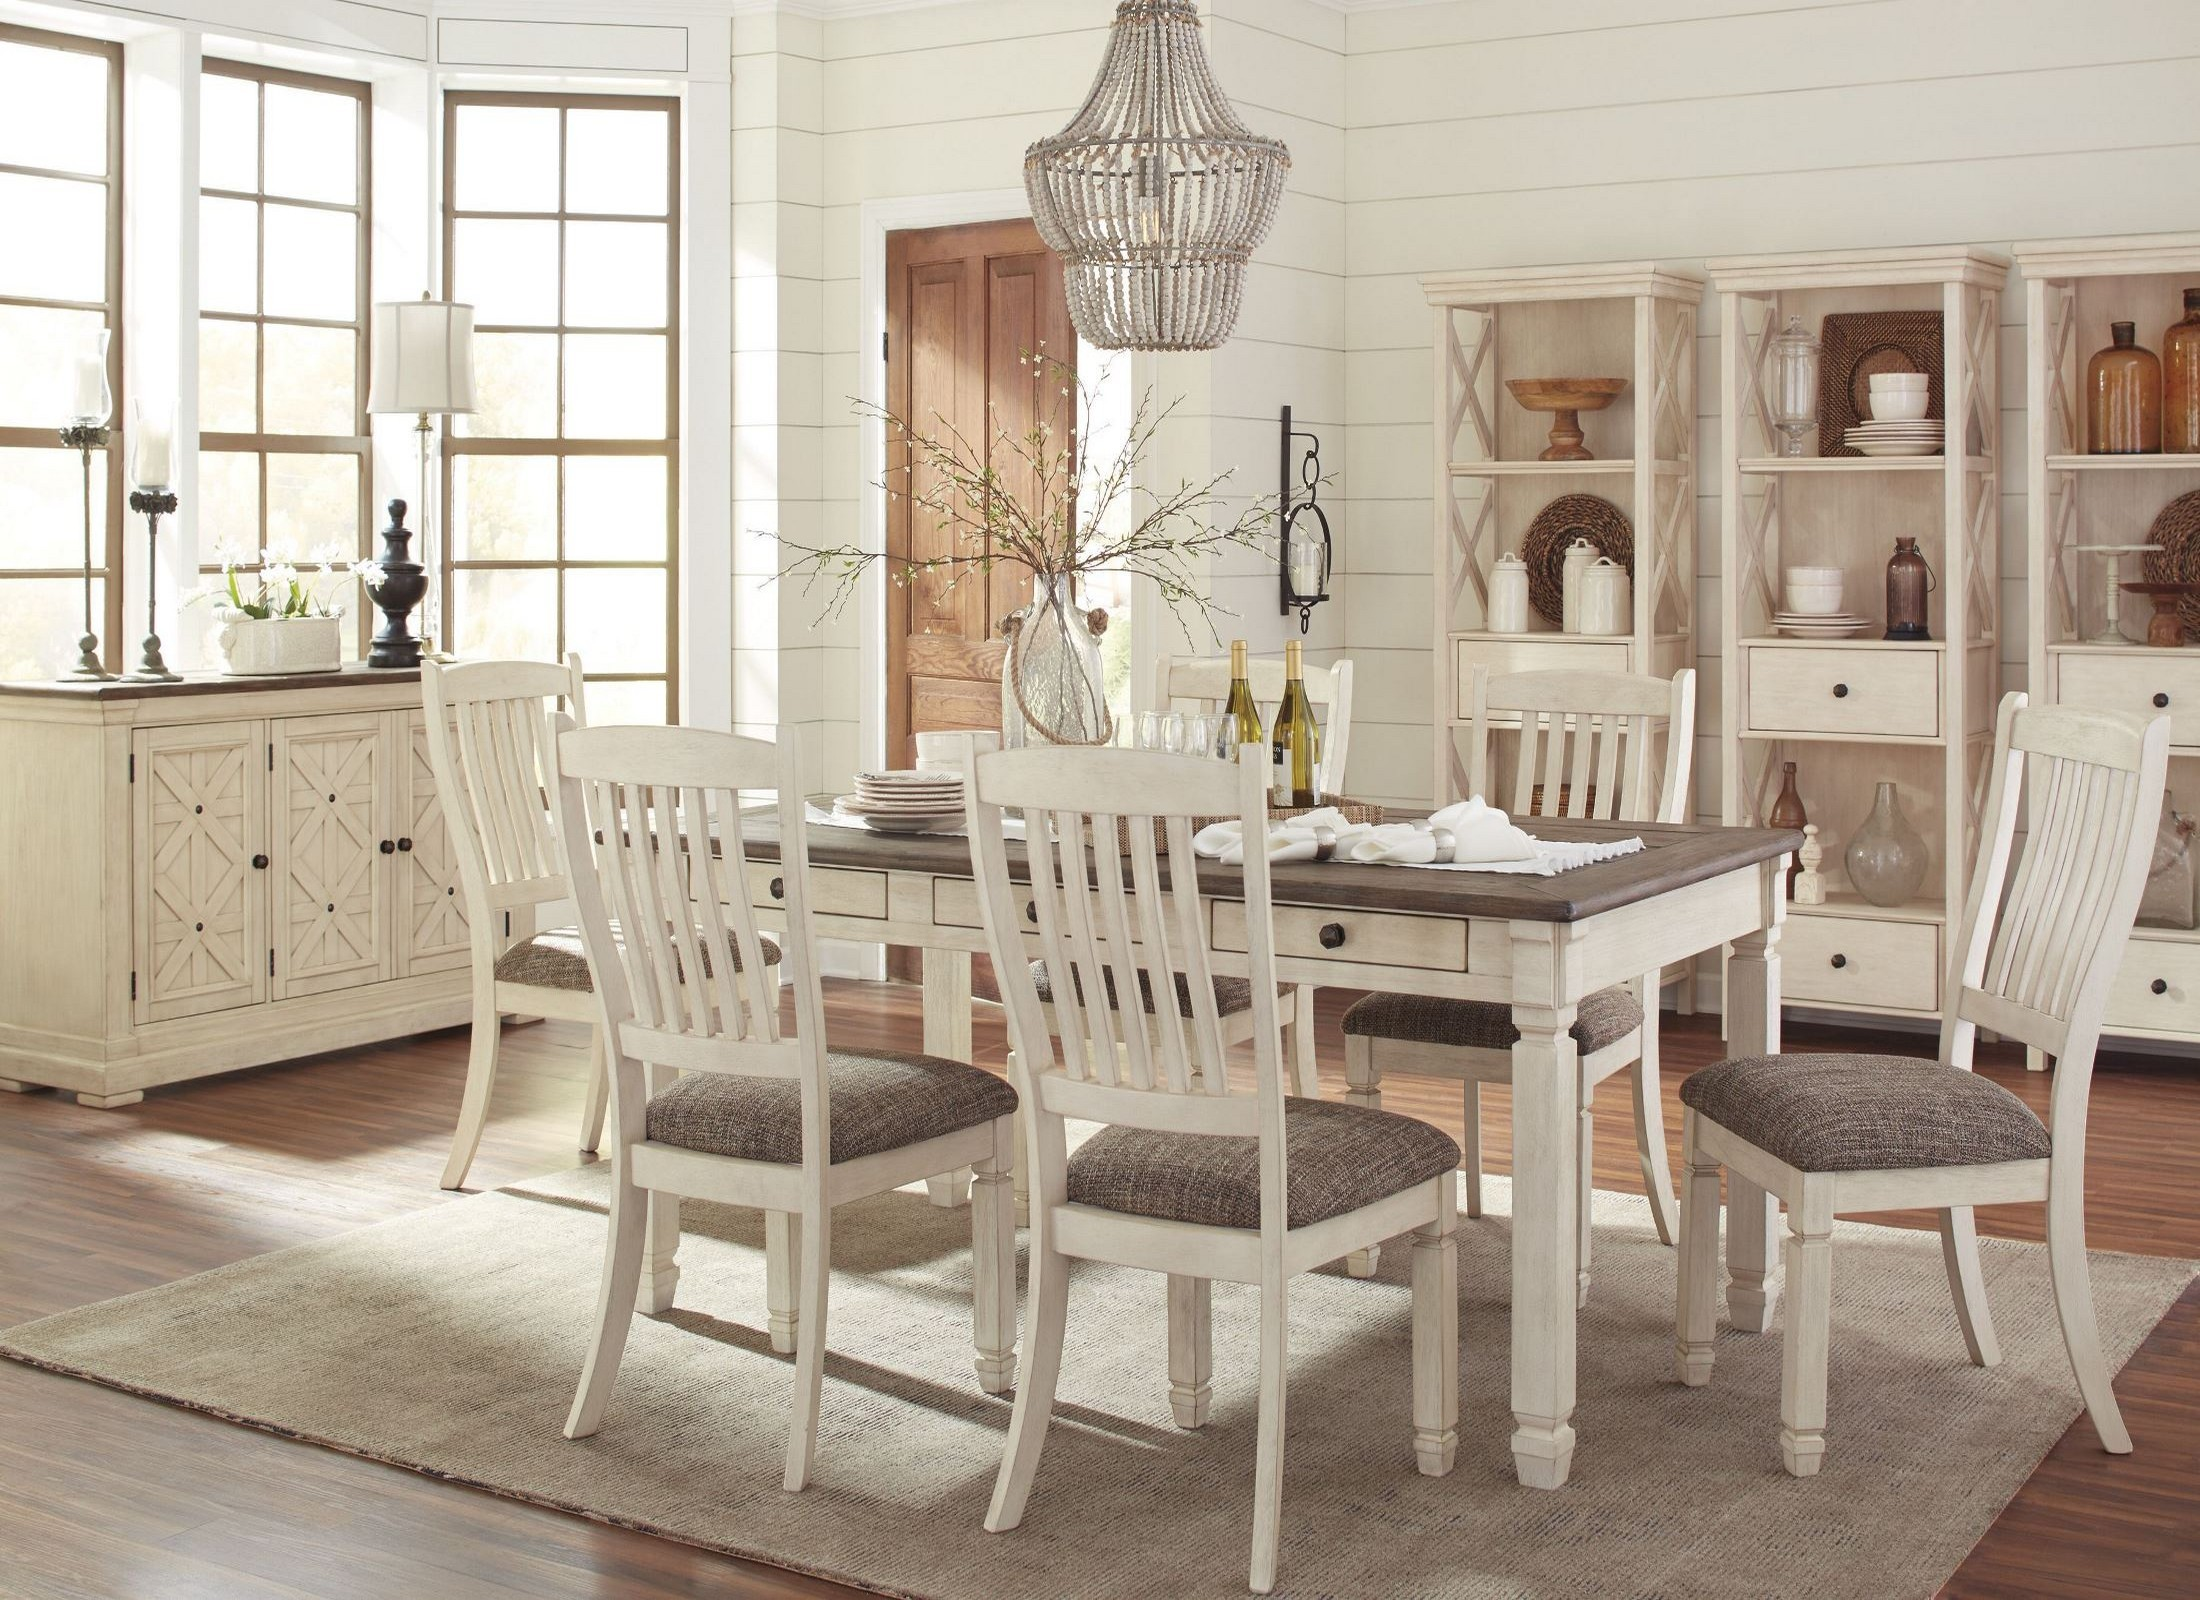 White Dining Table Set Bolanburg White And Gray Rectangular Dining Room Set From